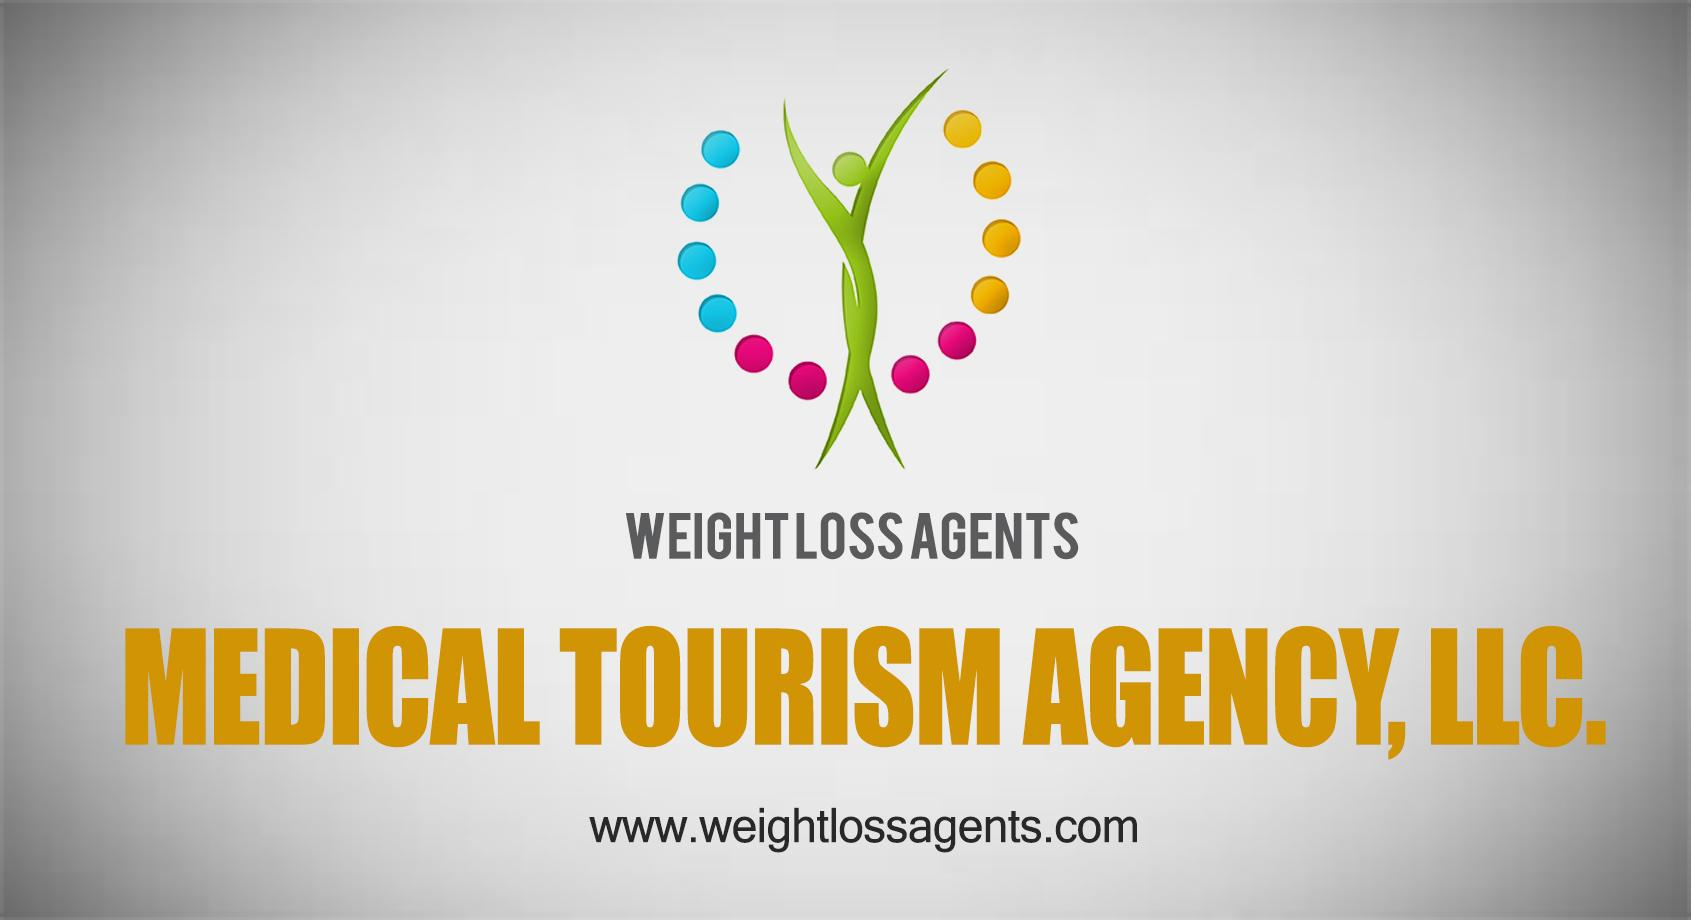 Medical Tourism Agency, LLC.